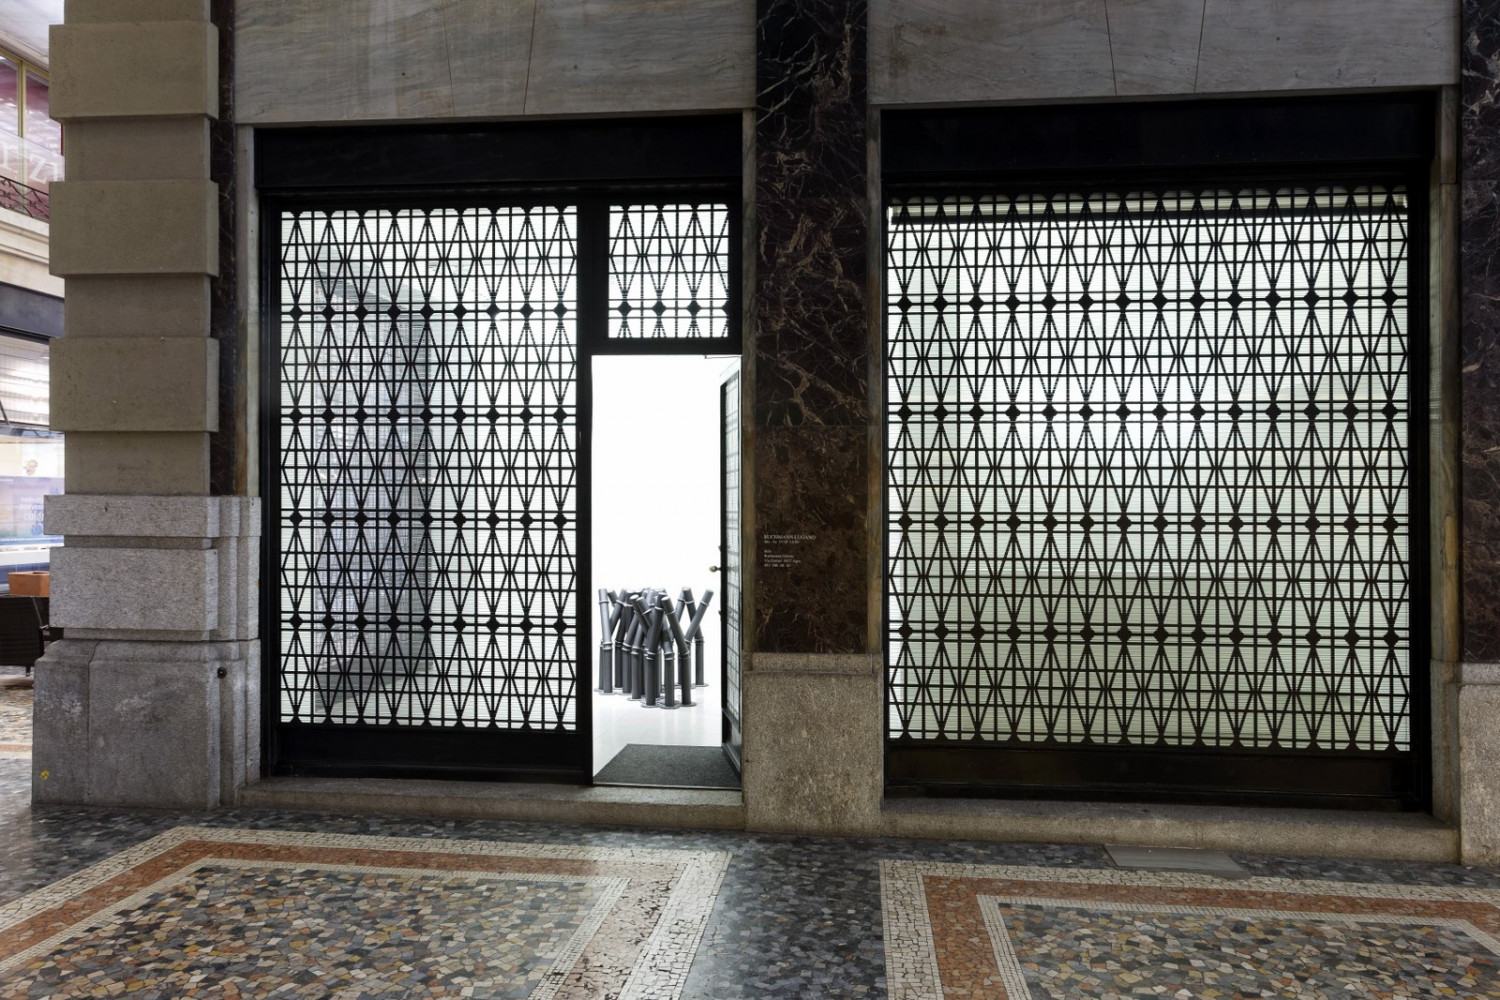 Bettina Pousttchi, 'Curtain Wall ', Installation view, Buchmann Lugano